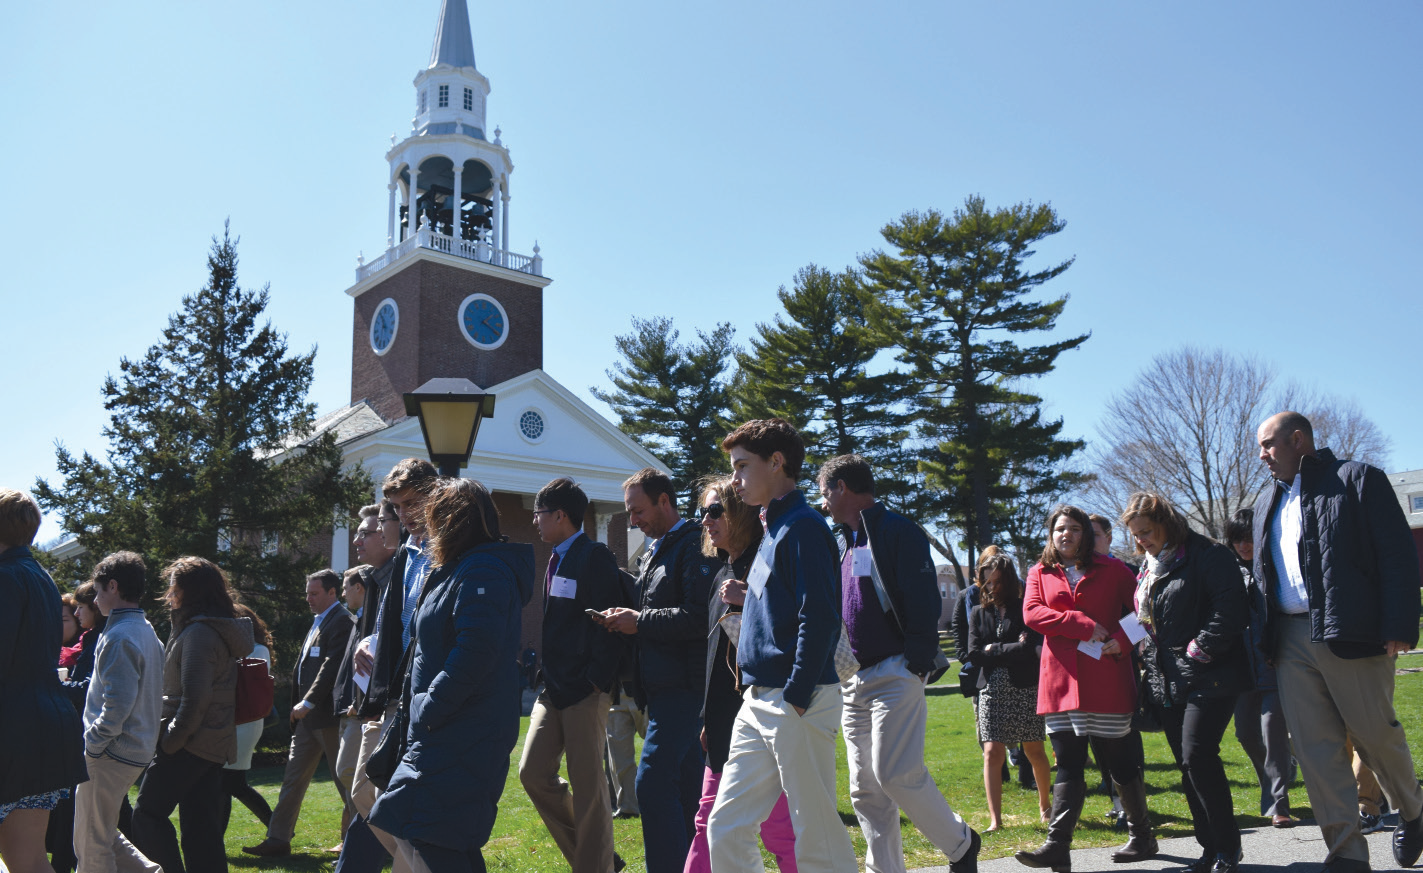 Photo by Elle Rinaldi/The Choate News